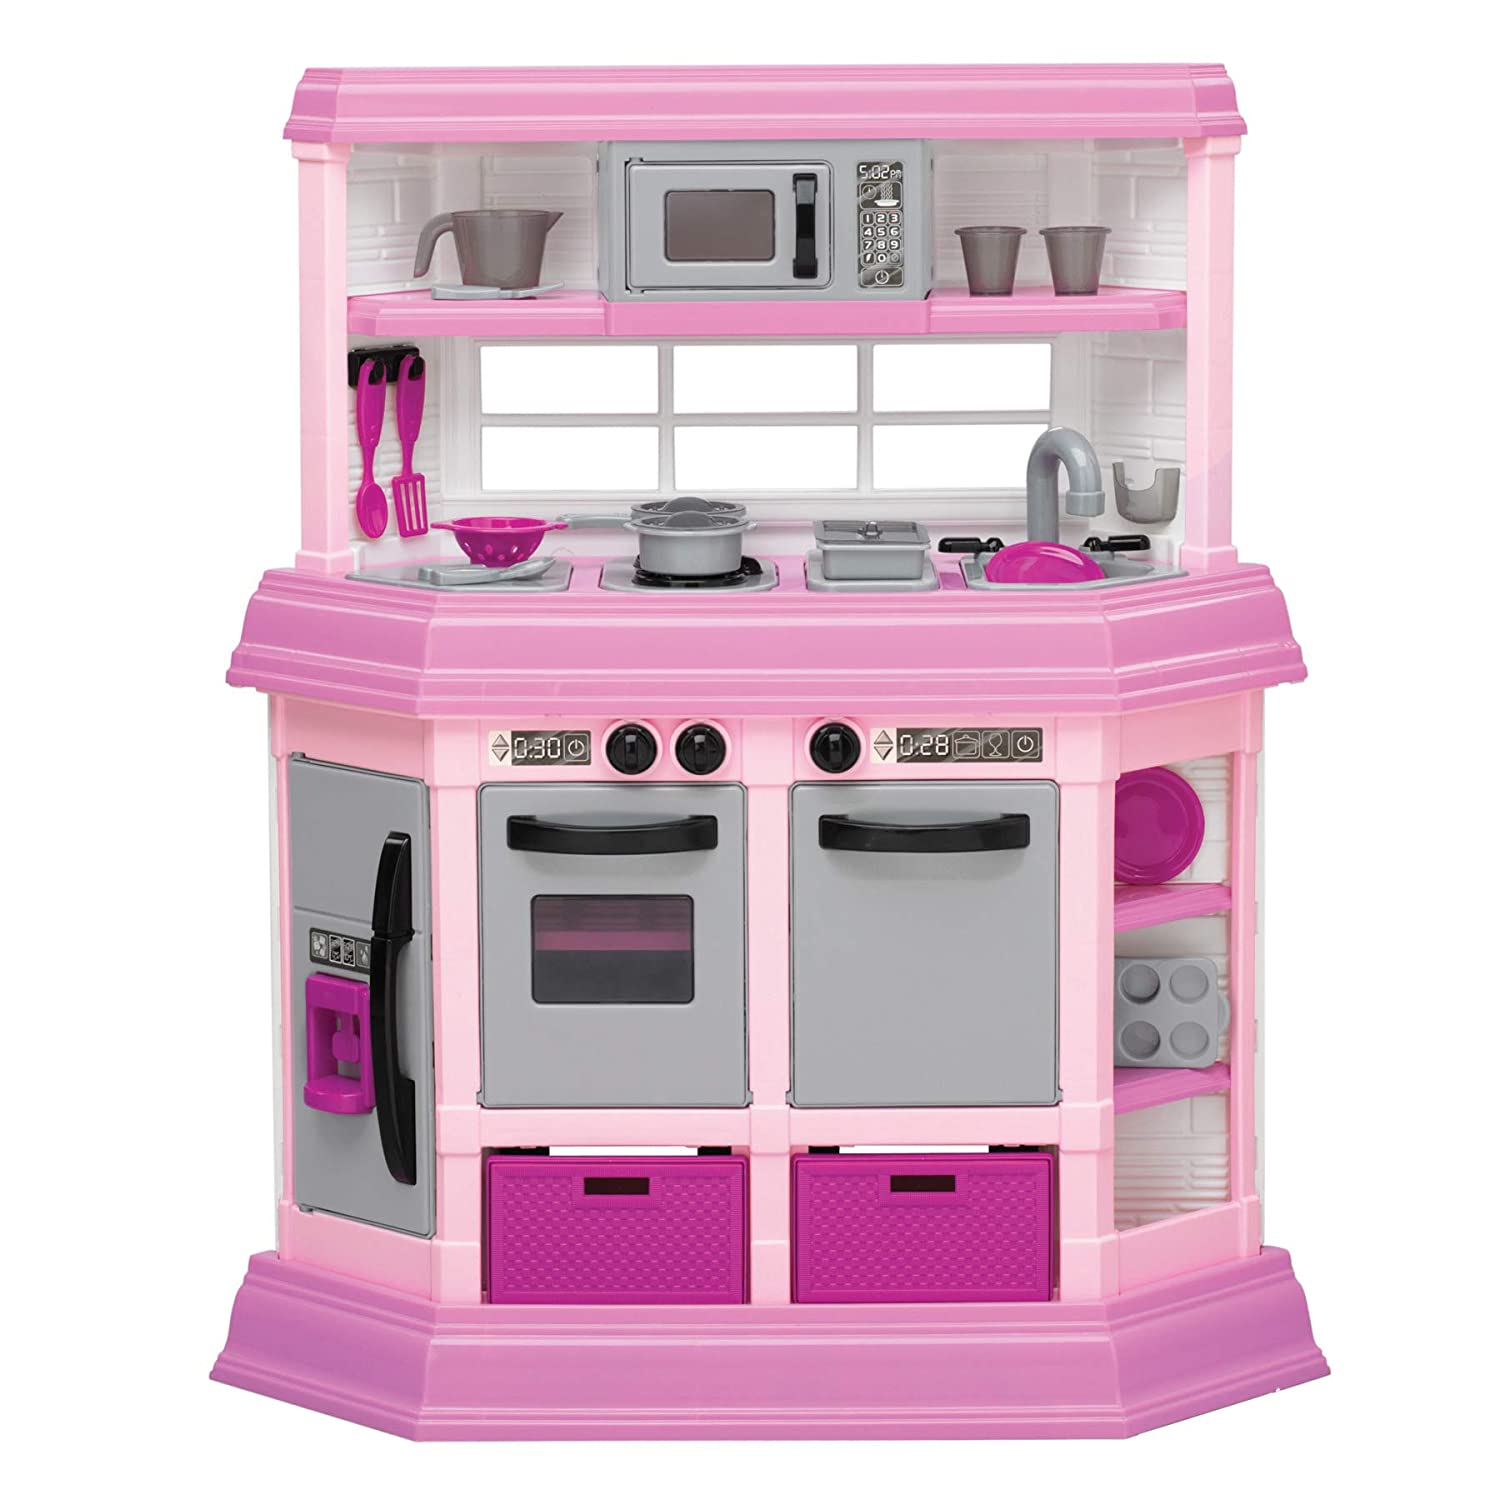 Top 9 Best Kitchen Set for Toddlers Reviews in 2021 10